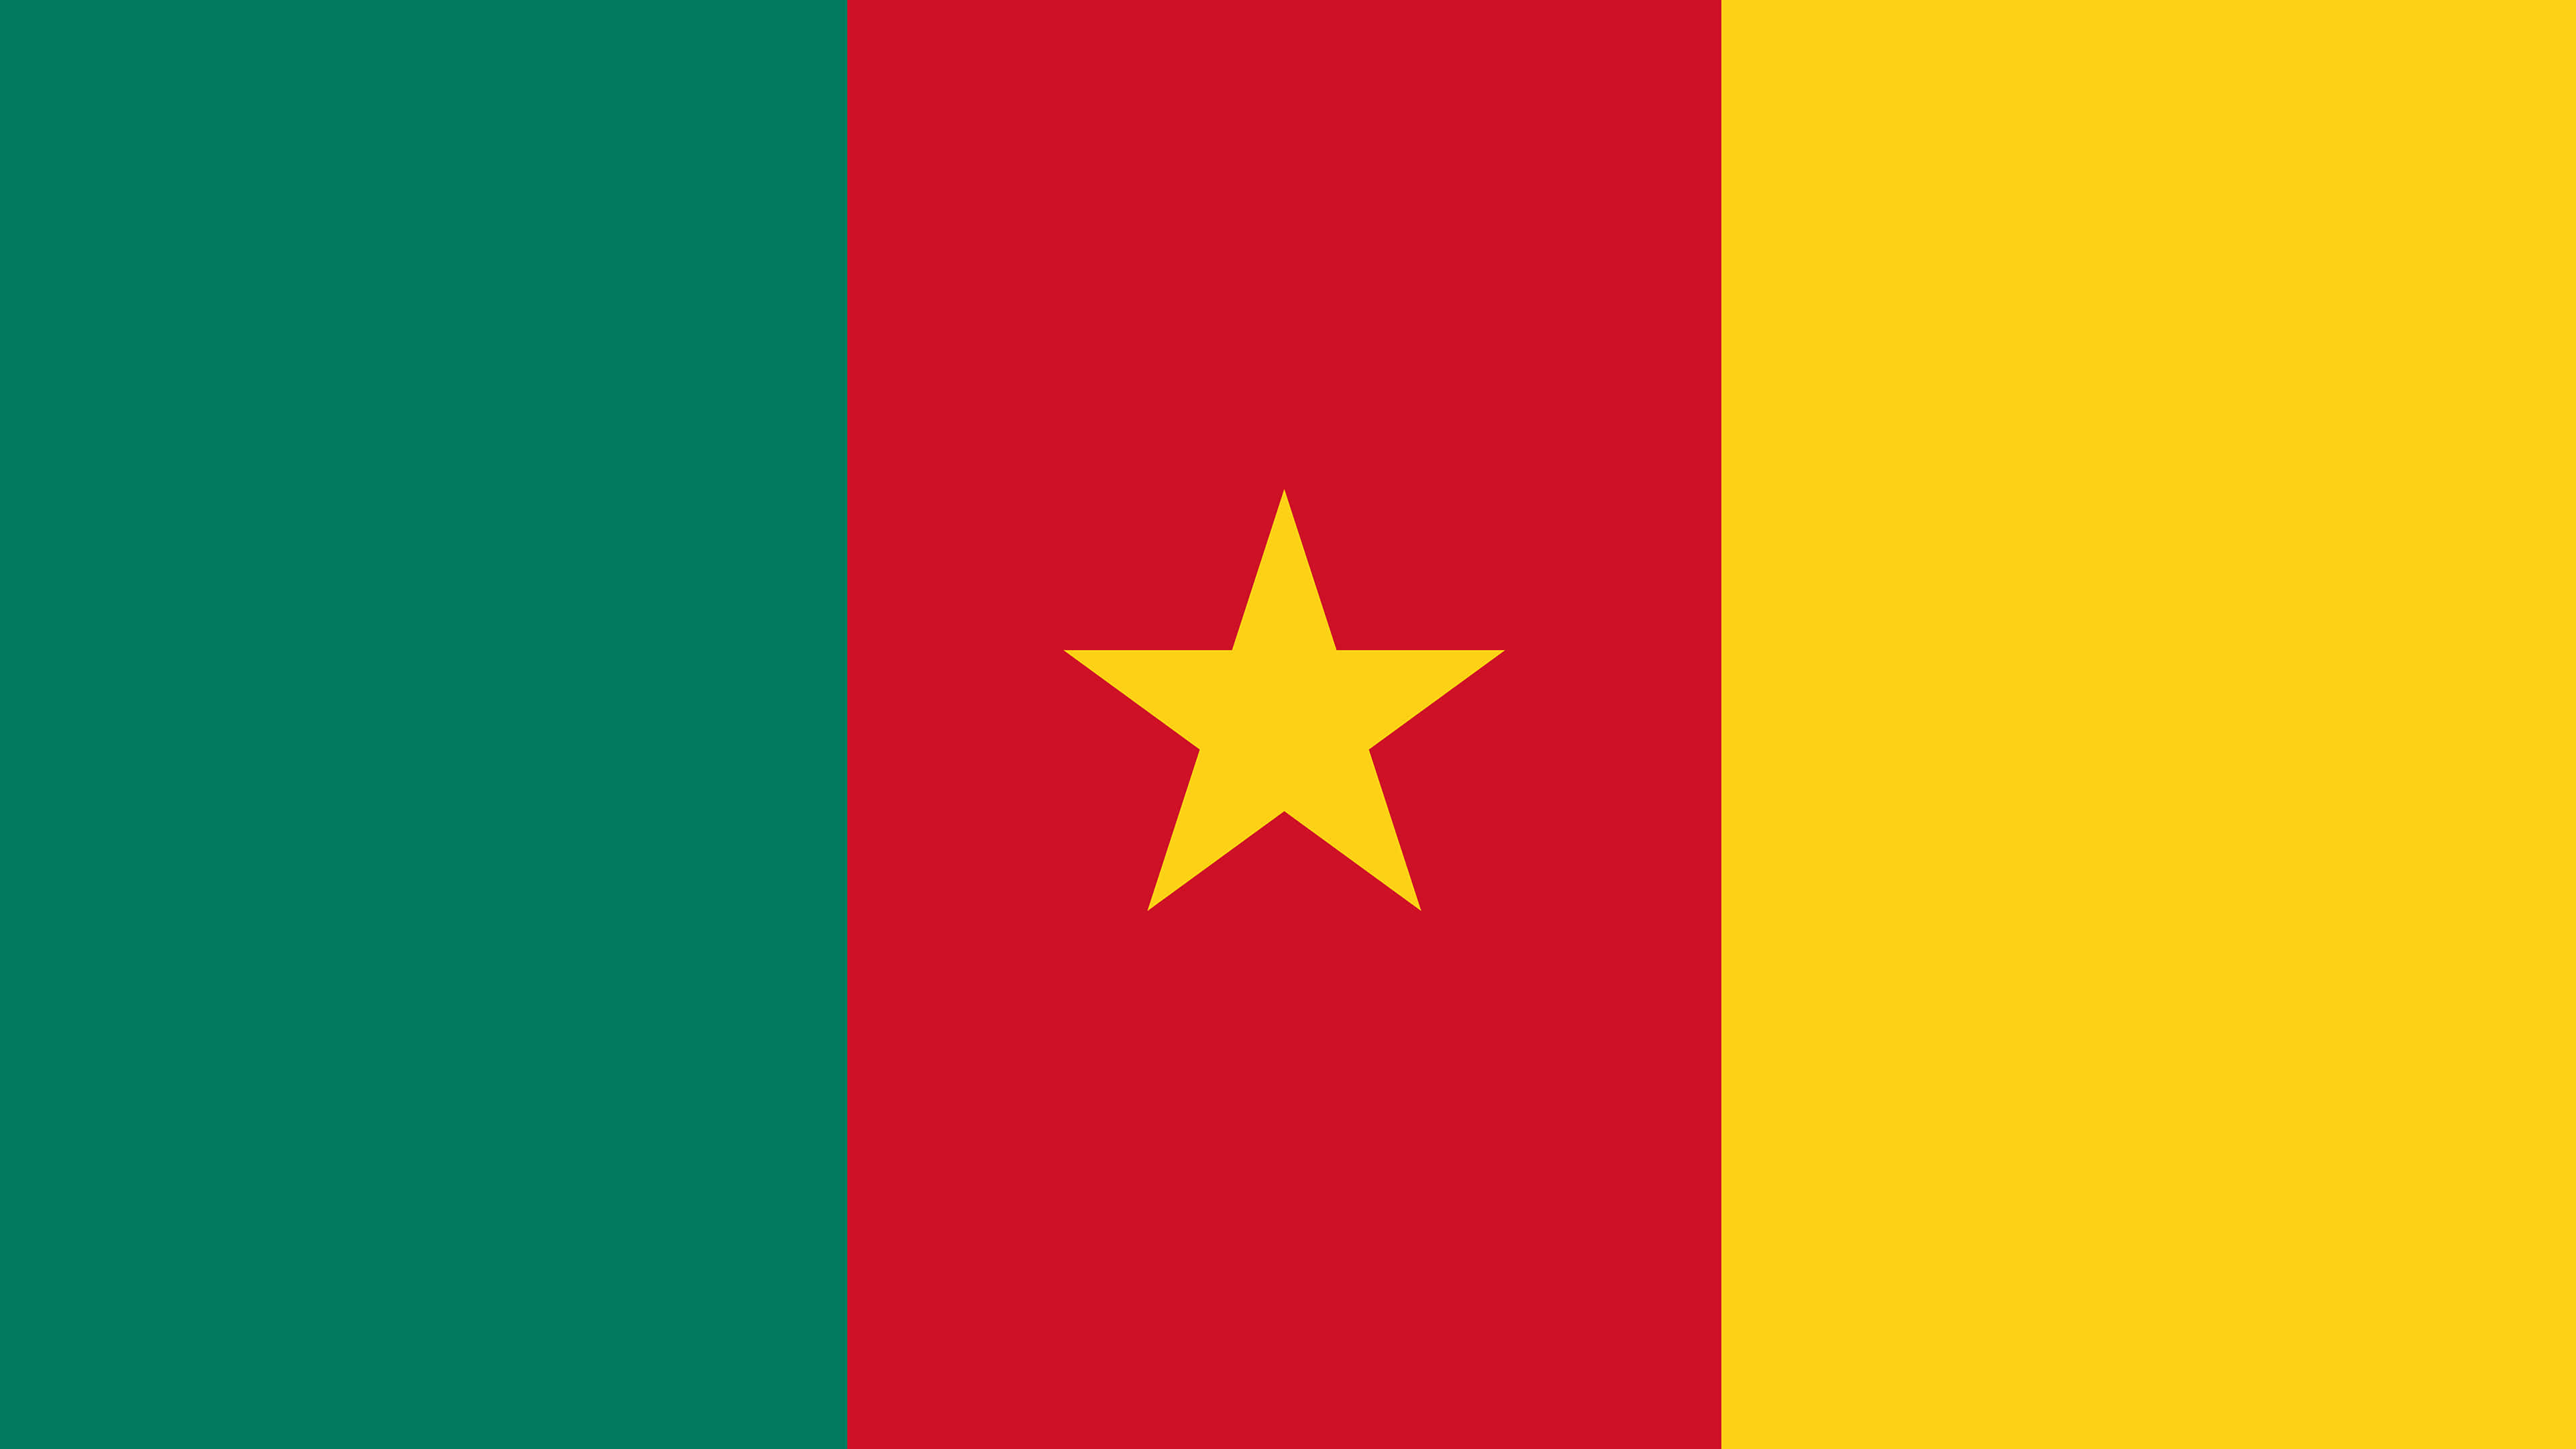 cameroon flag uhd 4k wallpaper